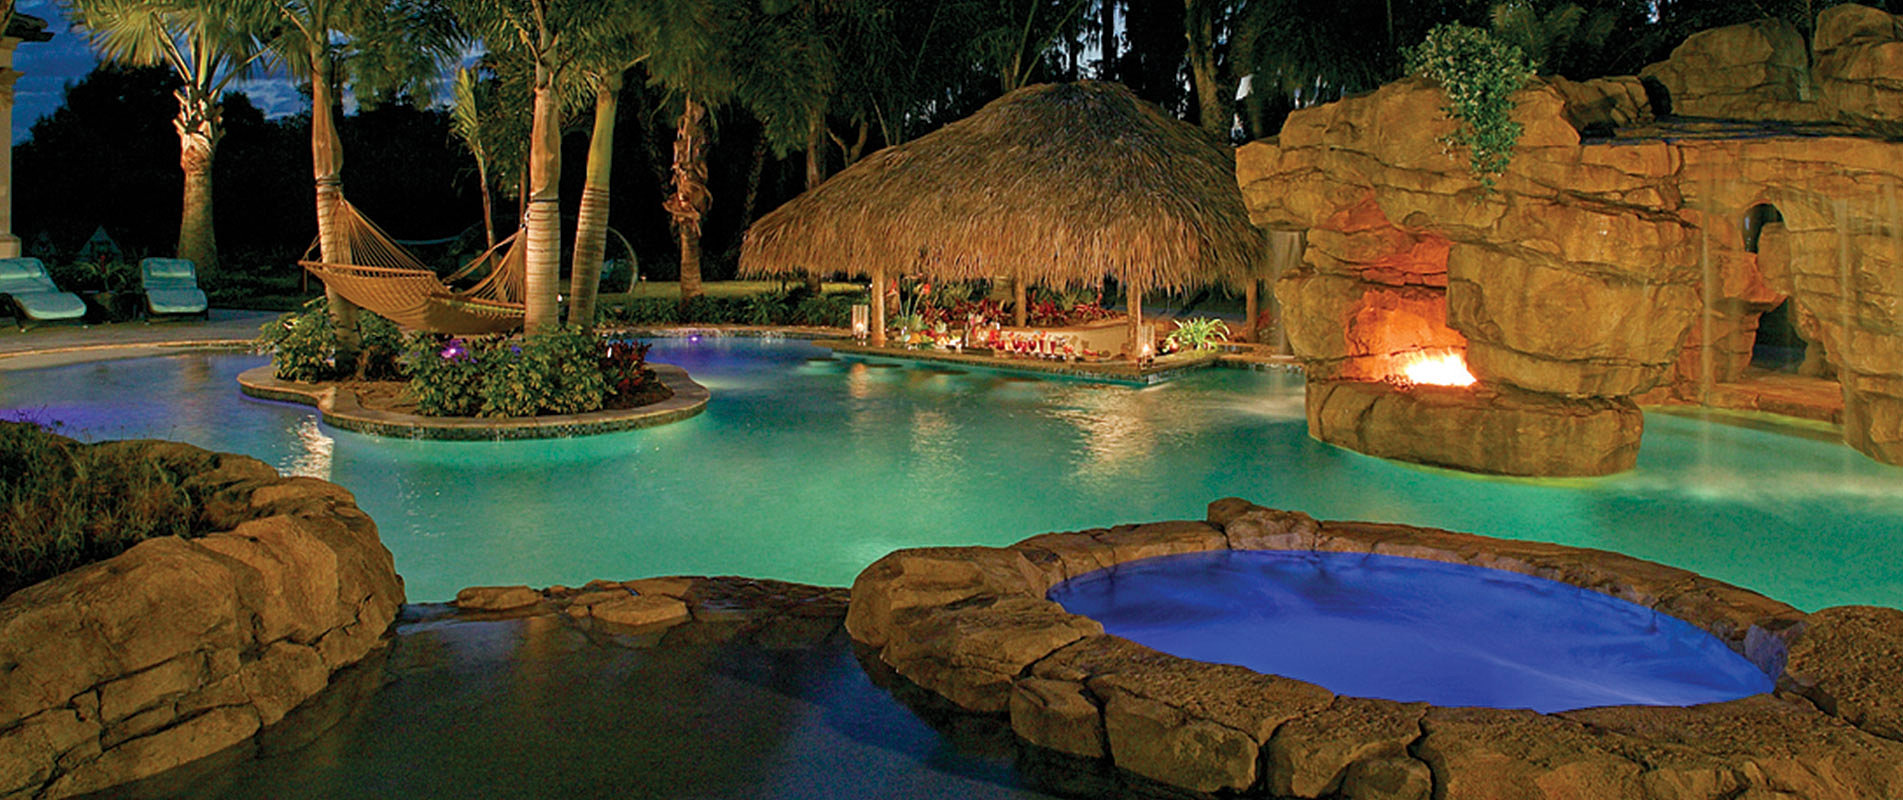 Wonderful Pool Designs Florida #6: Luxury-pool-with-island-and-hammock ...